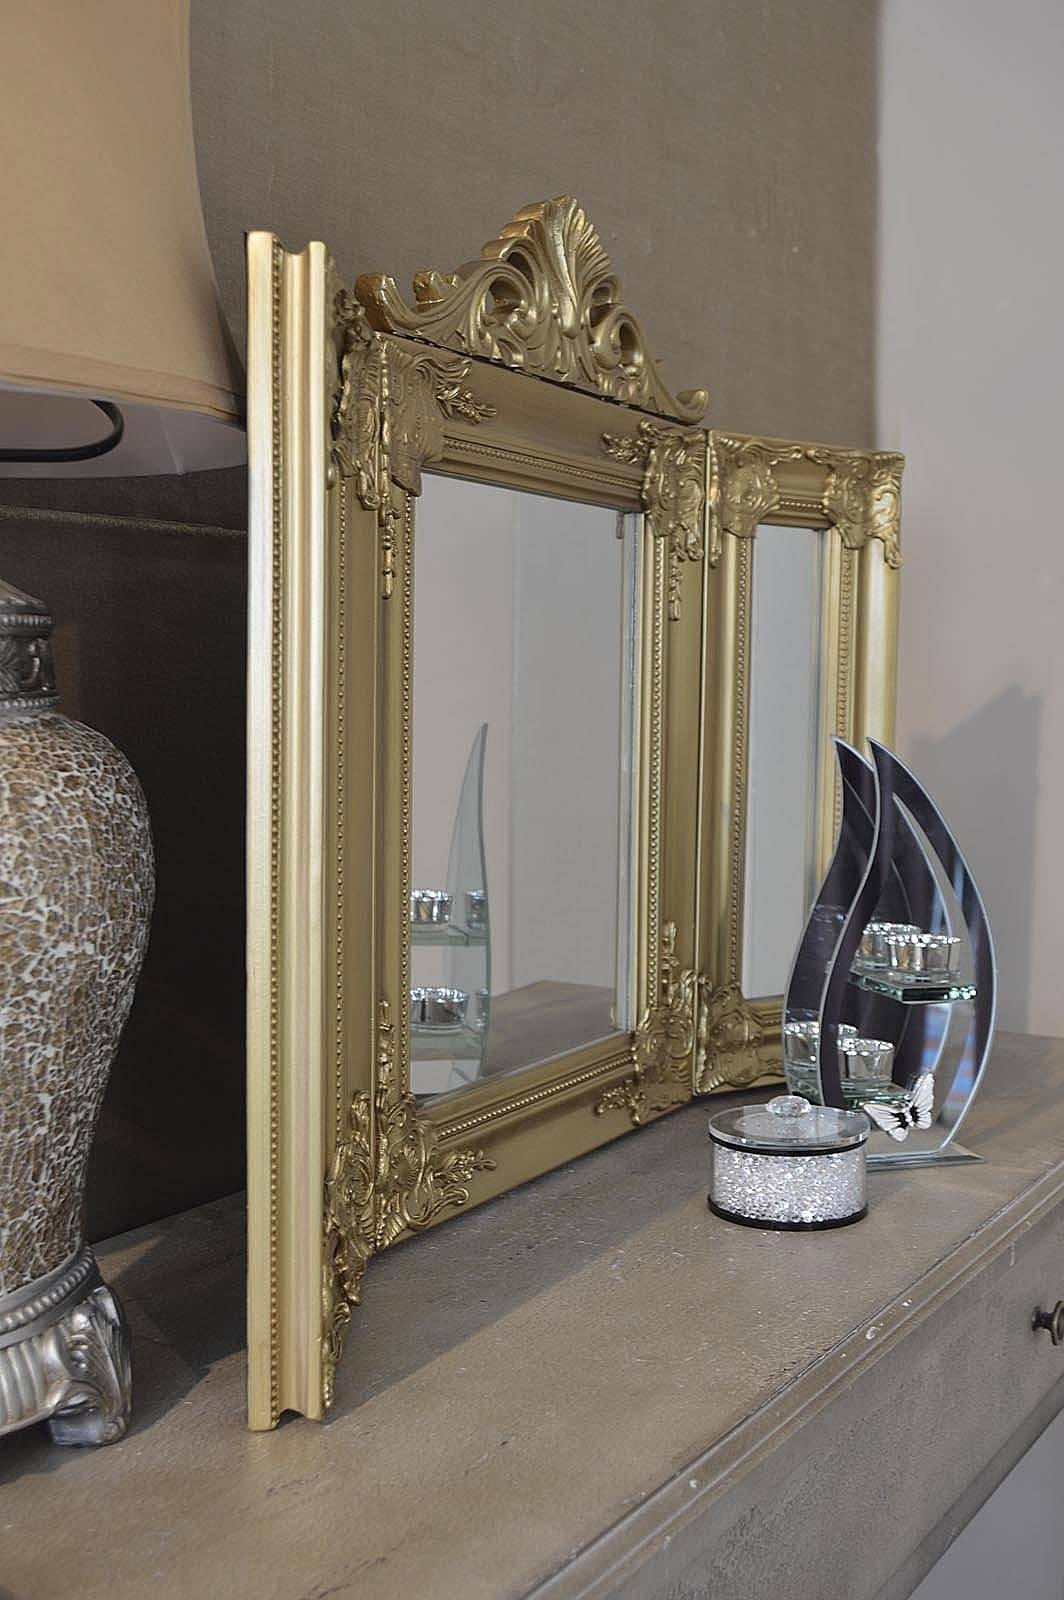 Elegant Gold Antique Style Design Free Standing Dressing Table within Free Standing Mirrors for Dressing Table (Image 6 of 15)